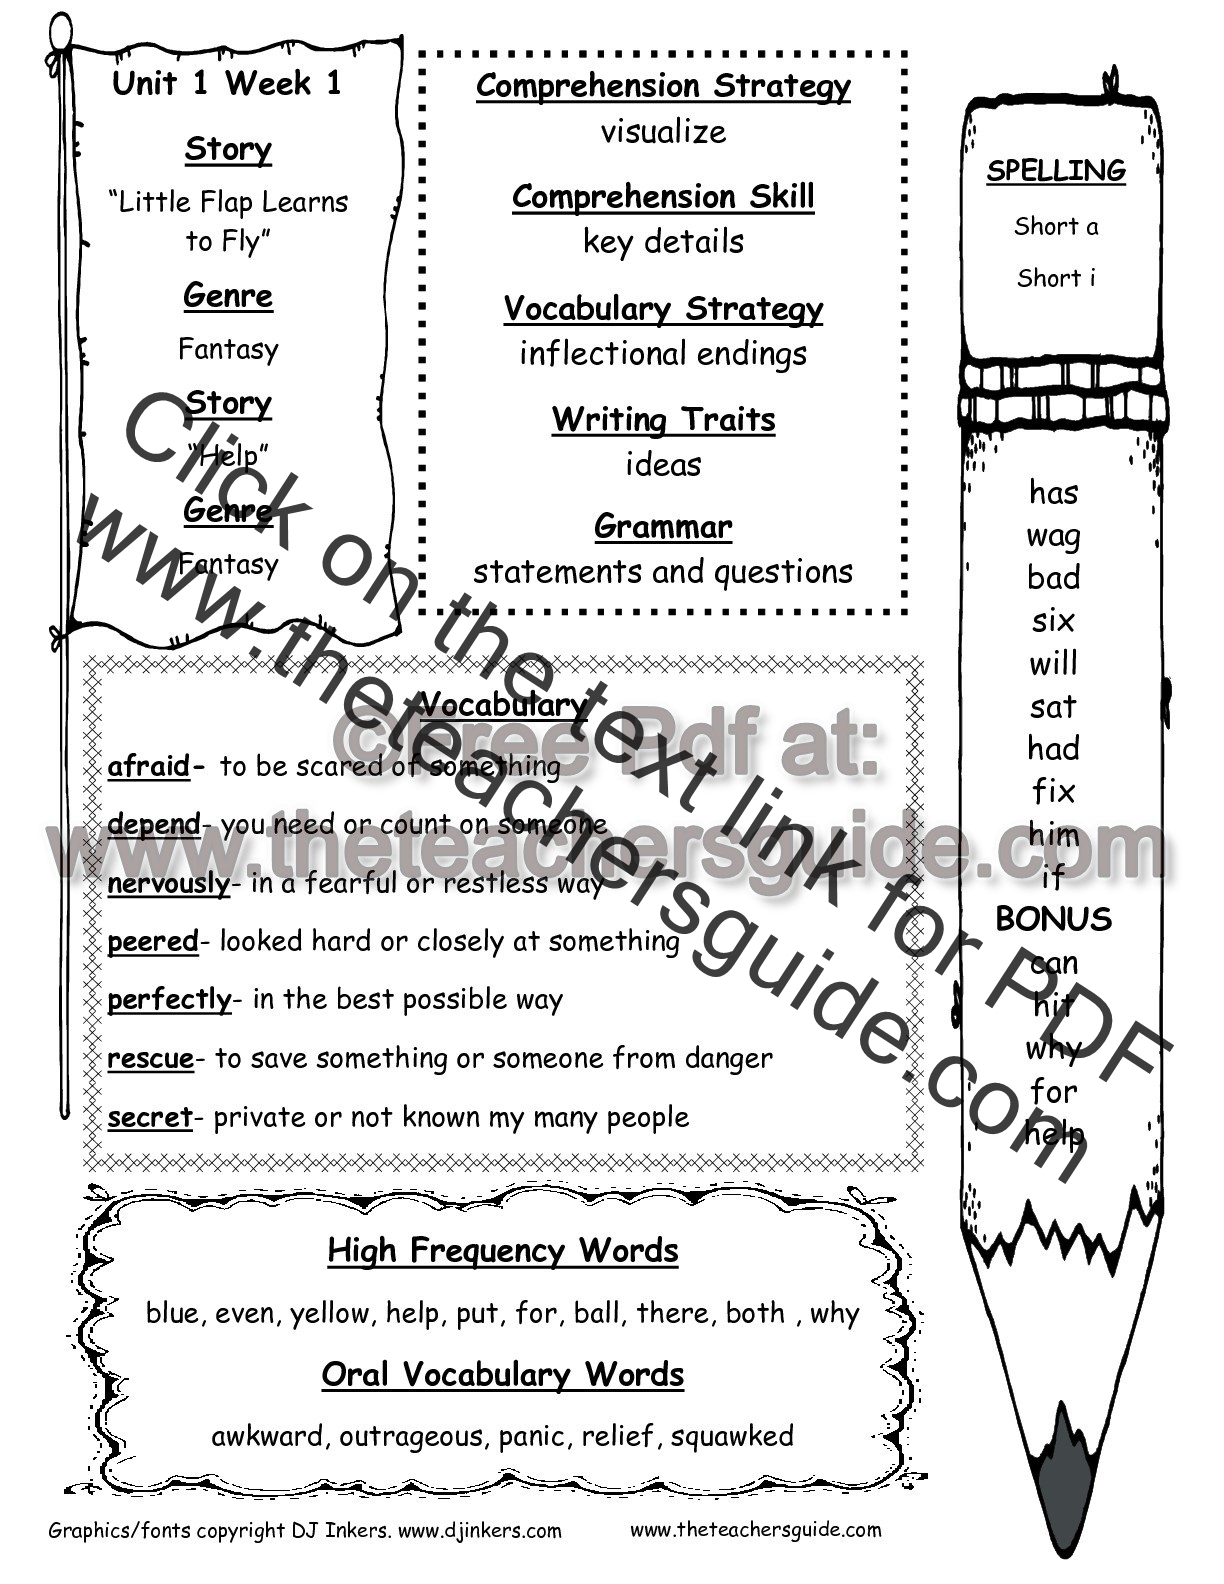 Worksheets 2nd Grade Grammar Worksheets mcgraw hill wonders second grade resources and printouts unit one week printout